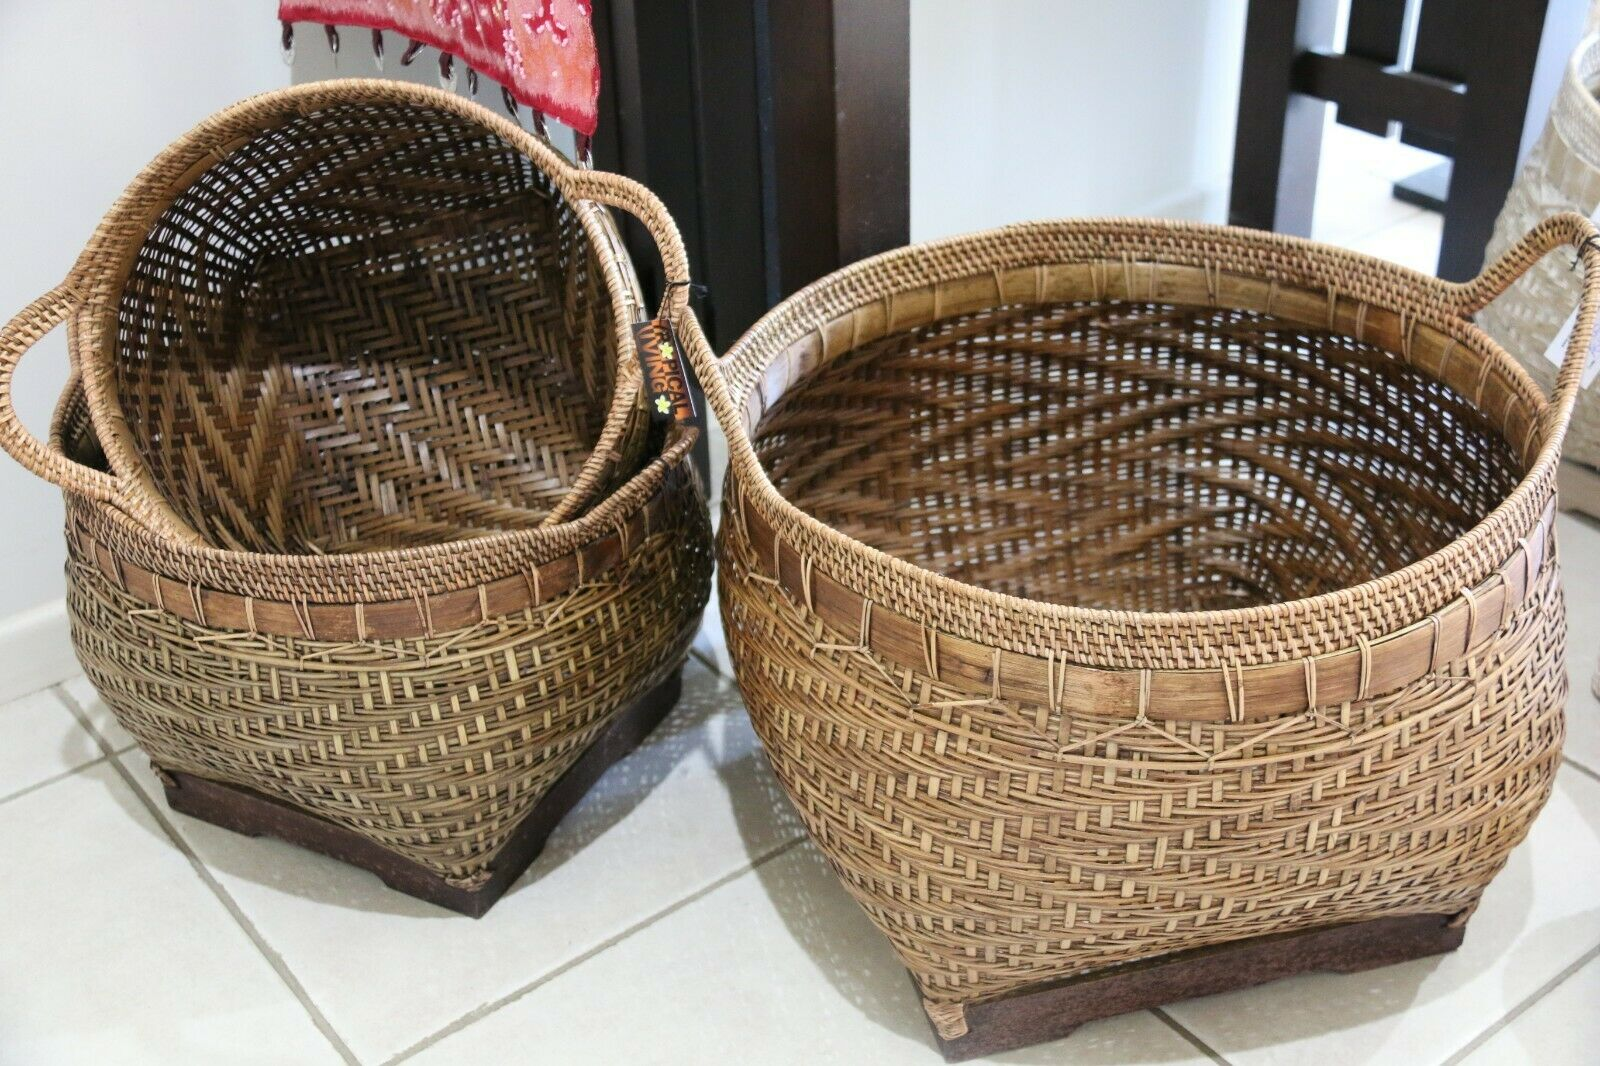 NEW Balinese Hand Woven Bamboo/Rattan Basket w/Handles - 3 sizes available